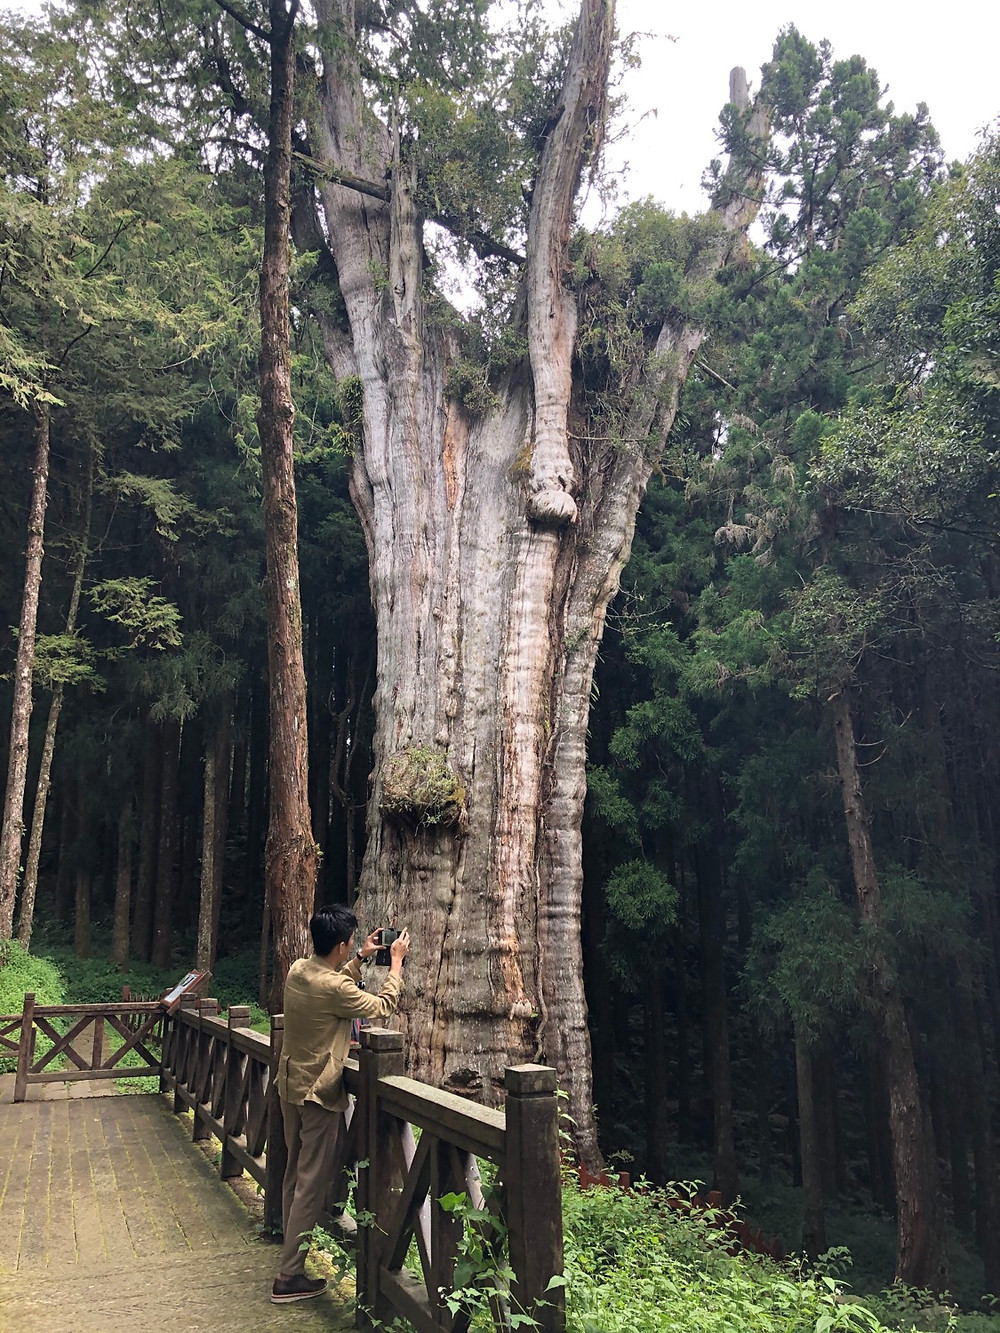 Giant Plank Tree Trail 巨木群棧道